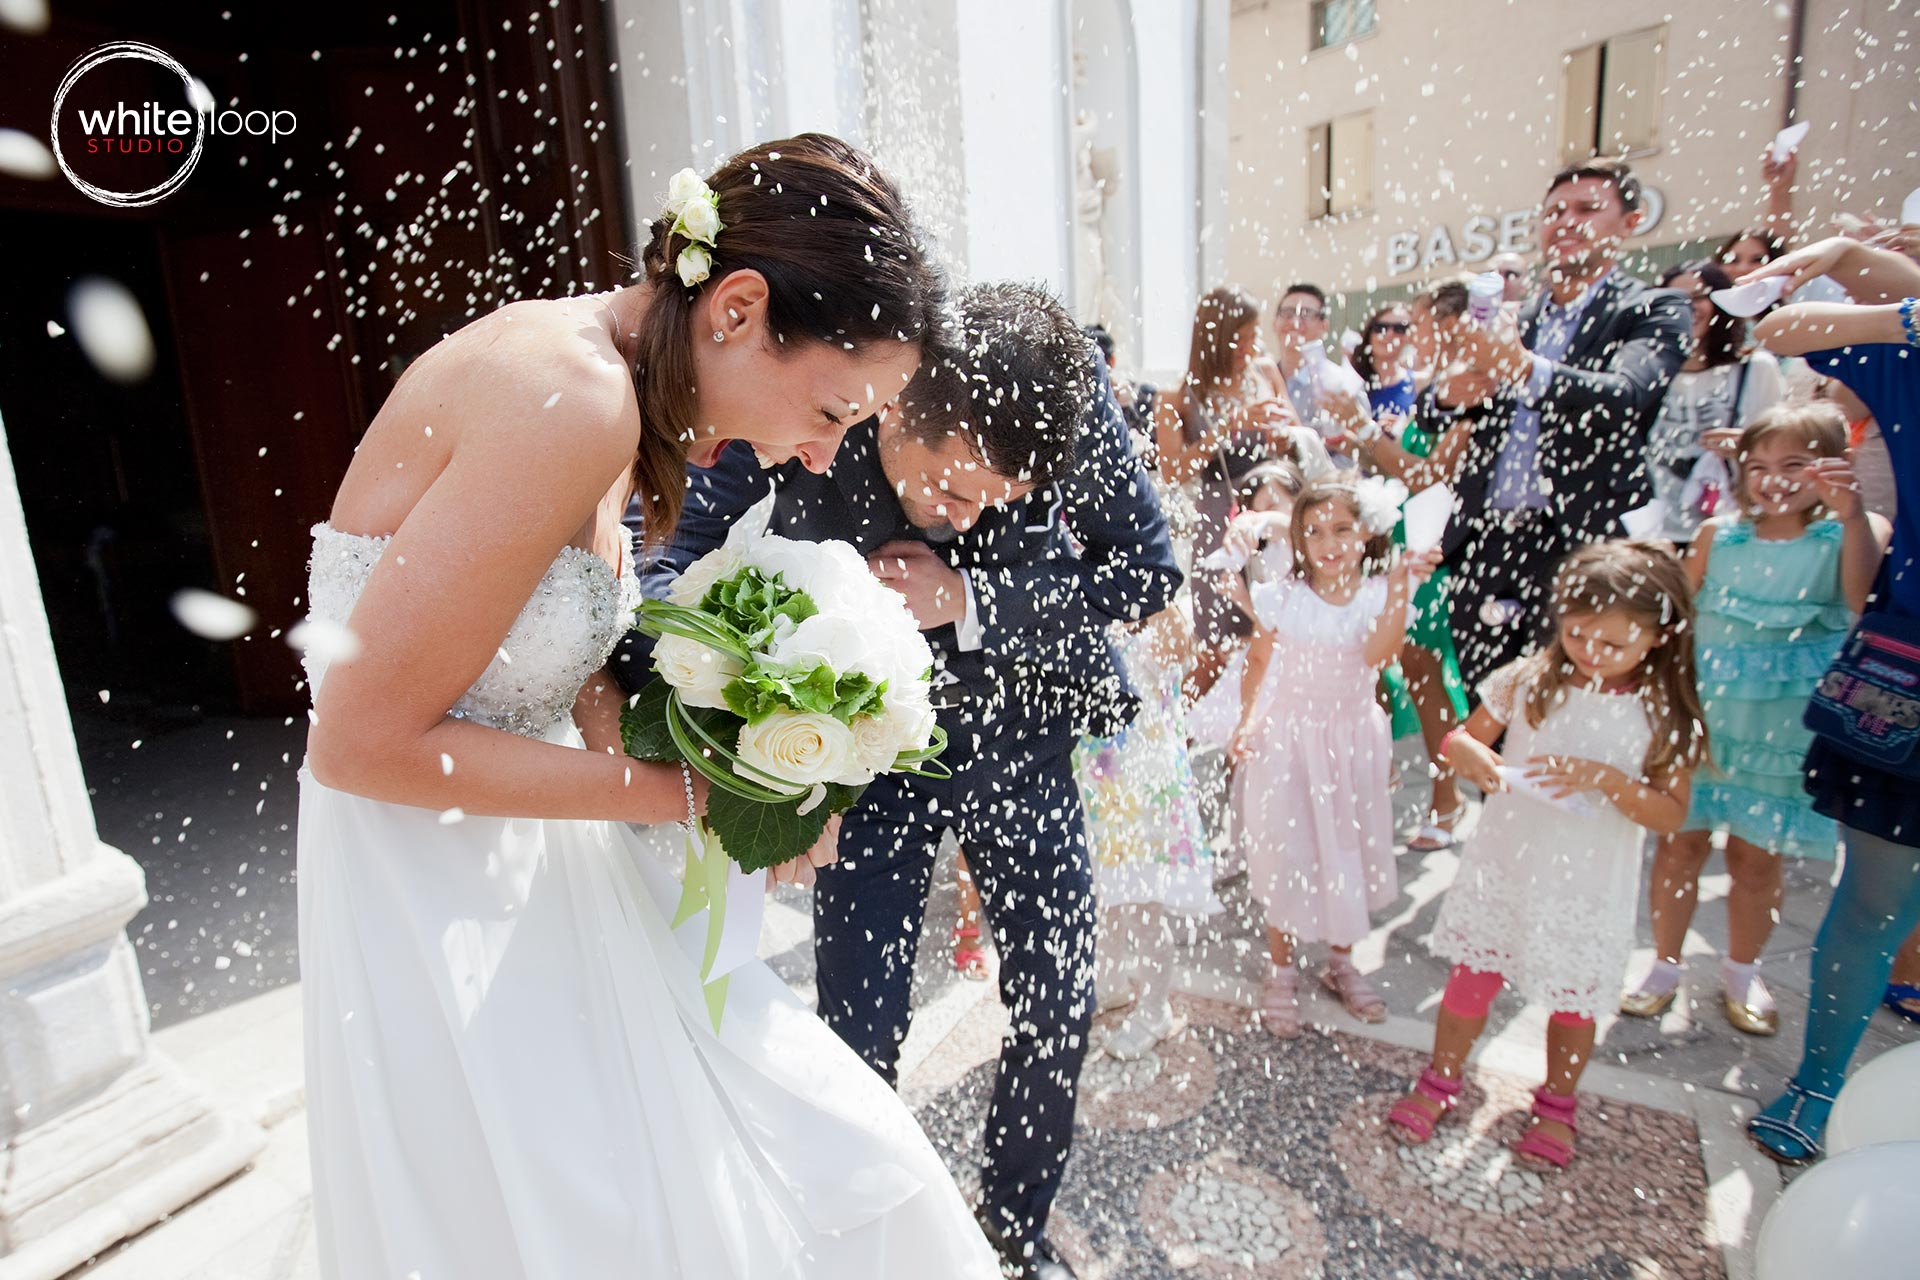 The bride and groom are celebrated outside the church, throwing rice as the wedding tradition.